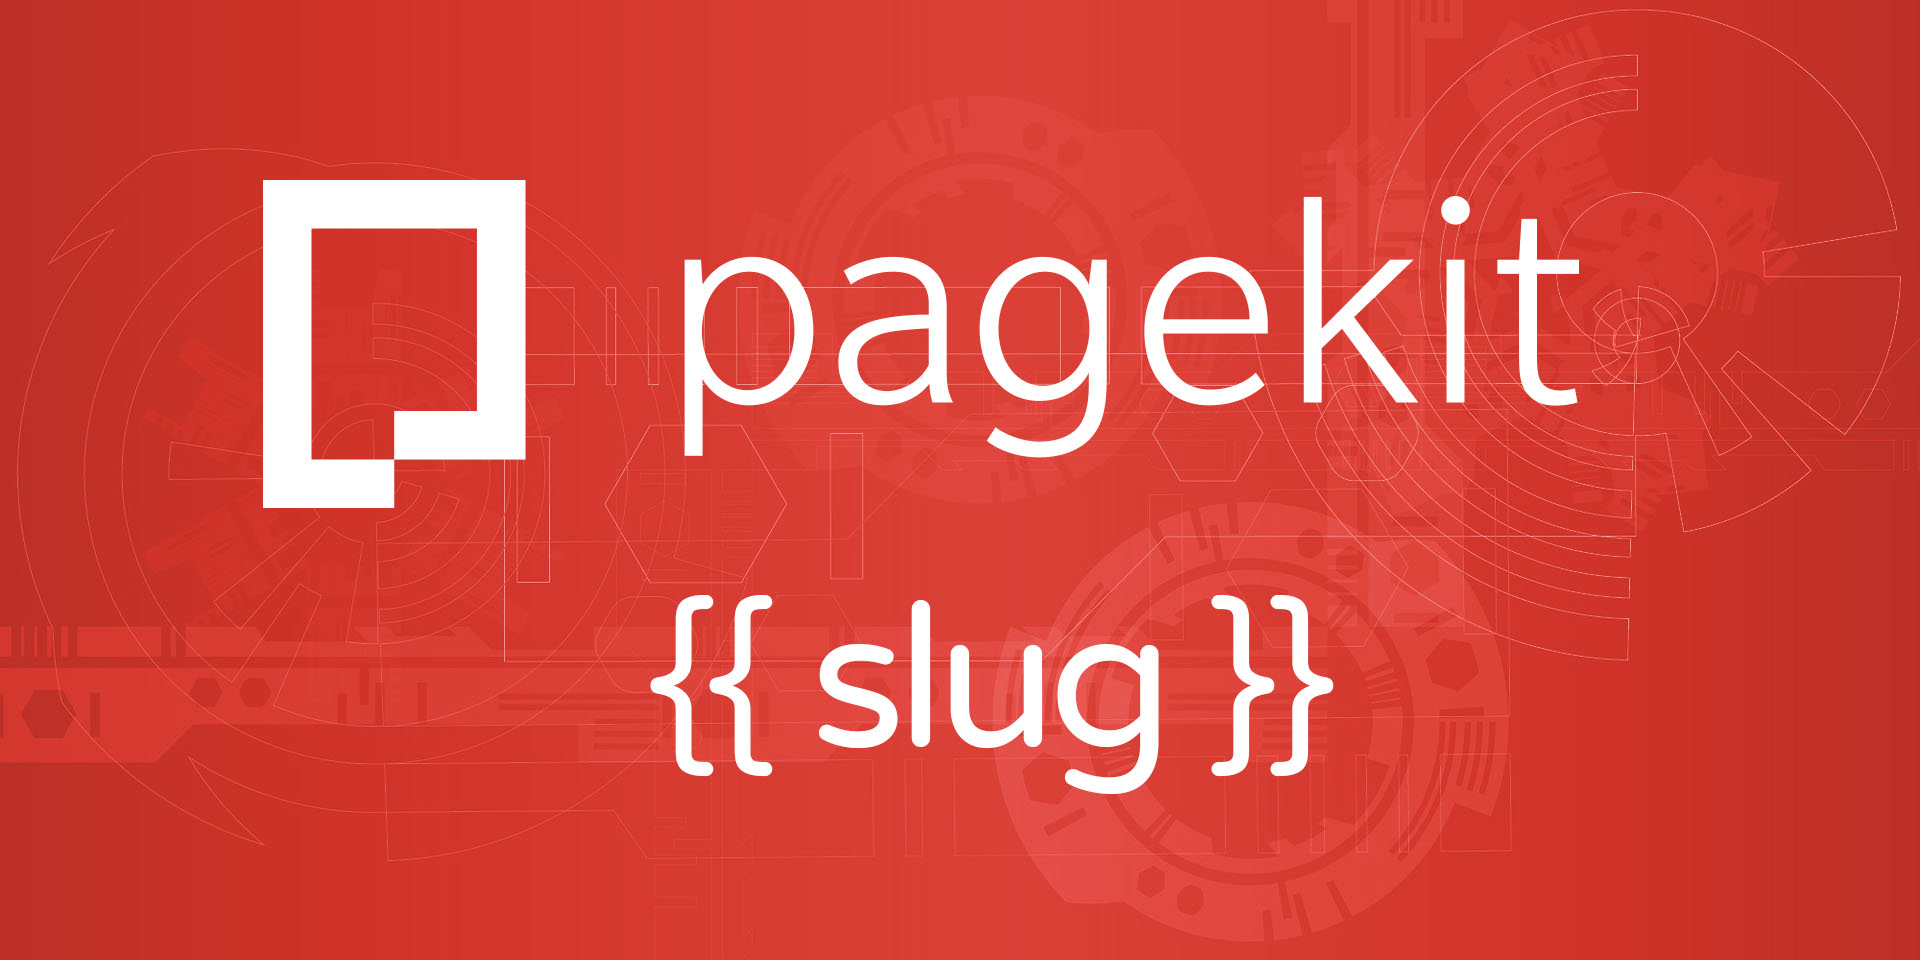 pagekit_slug.jpg